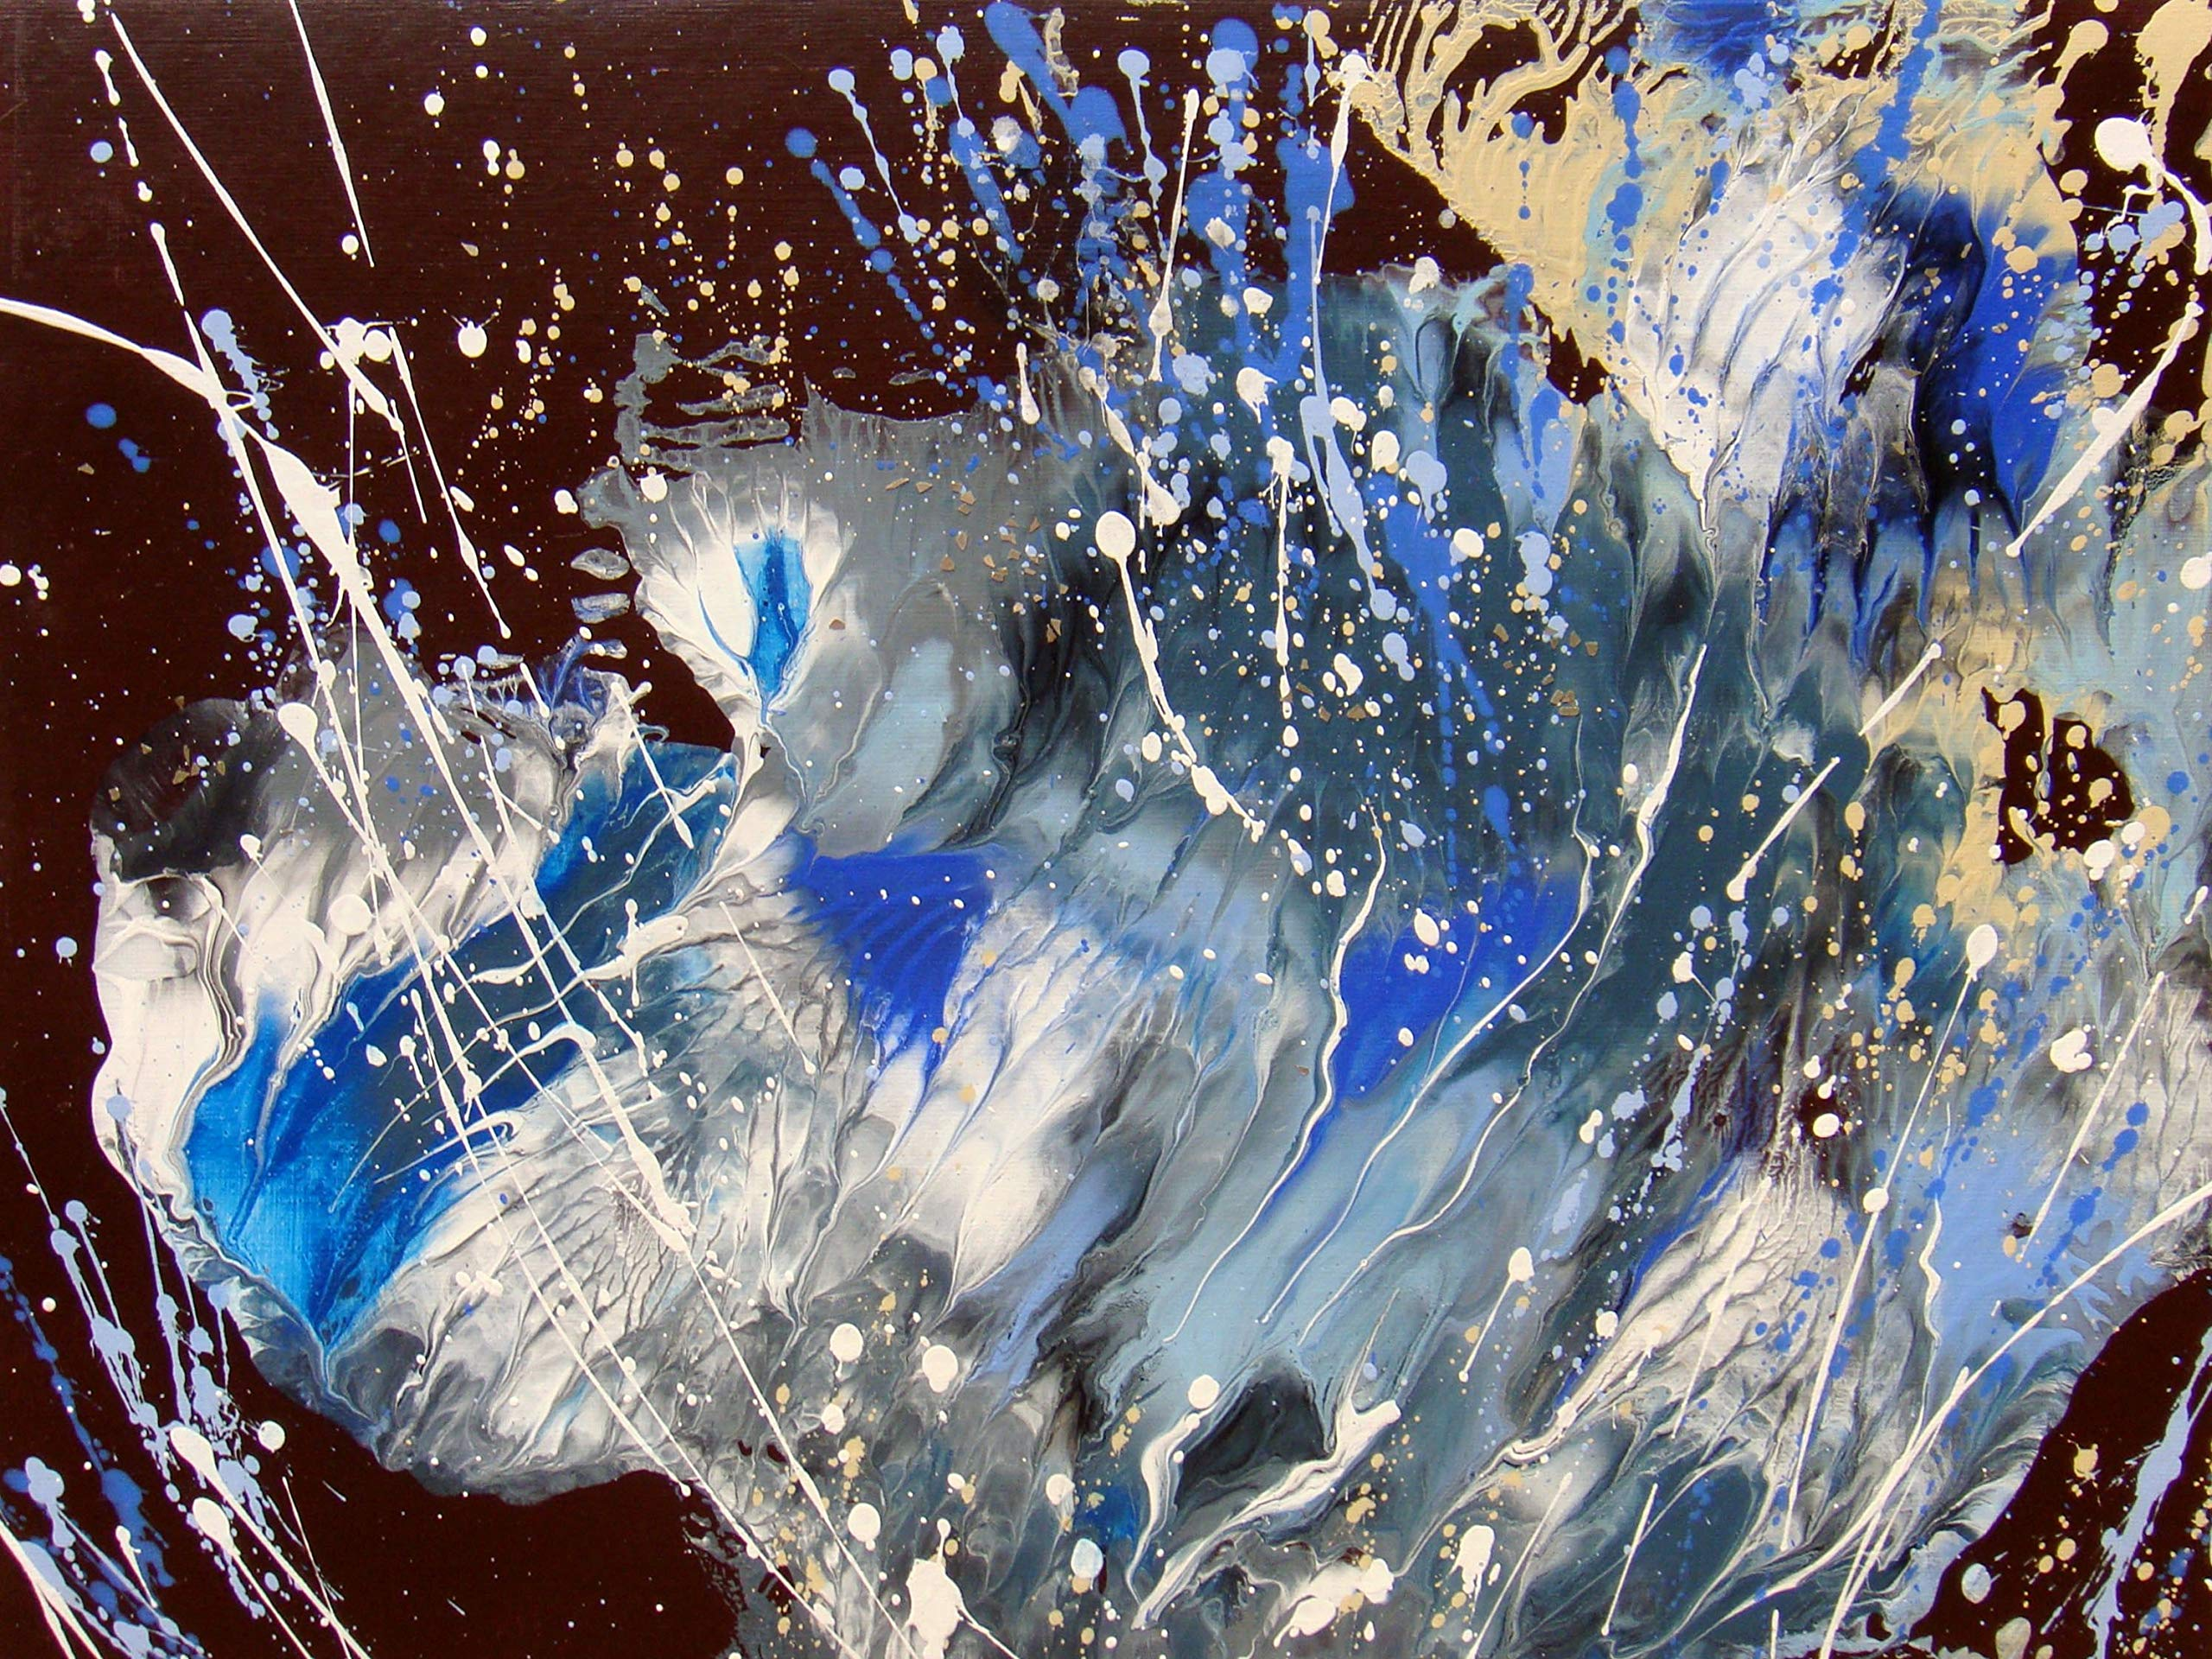 SPLASHES #6 by